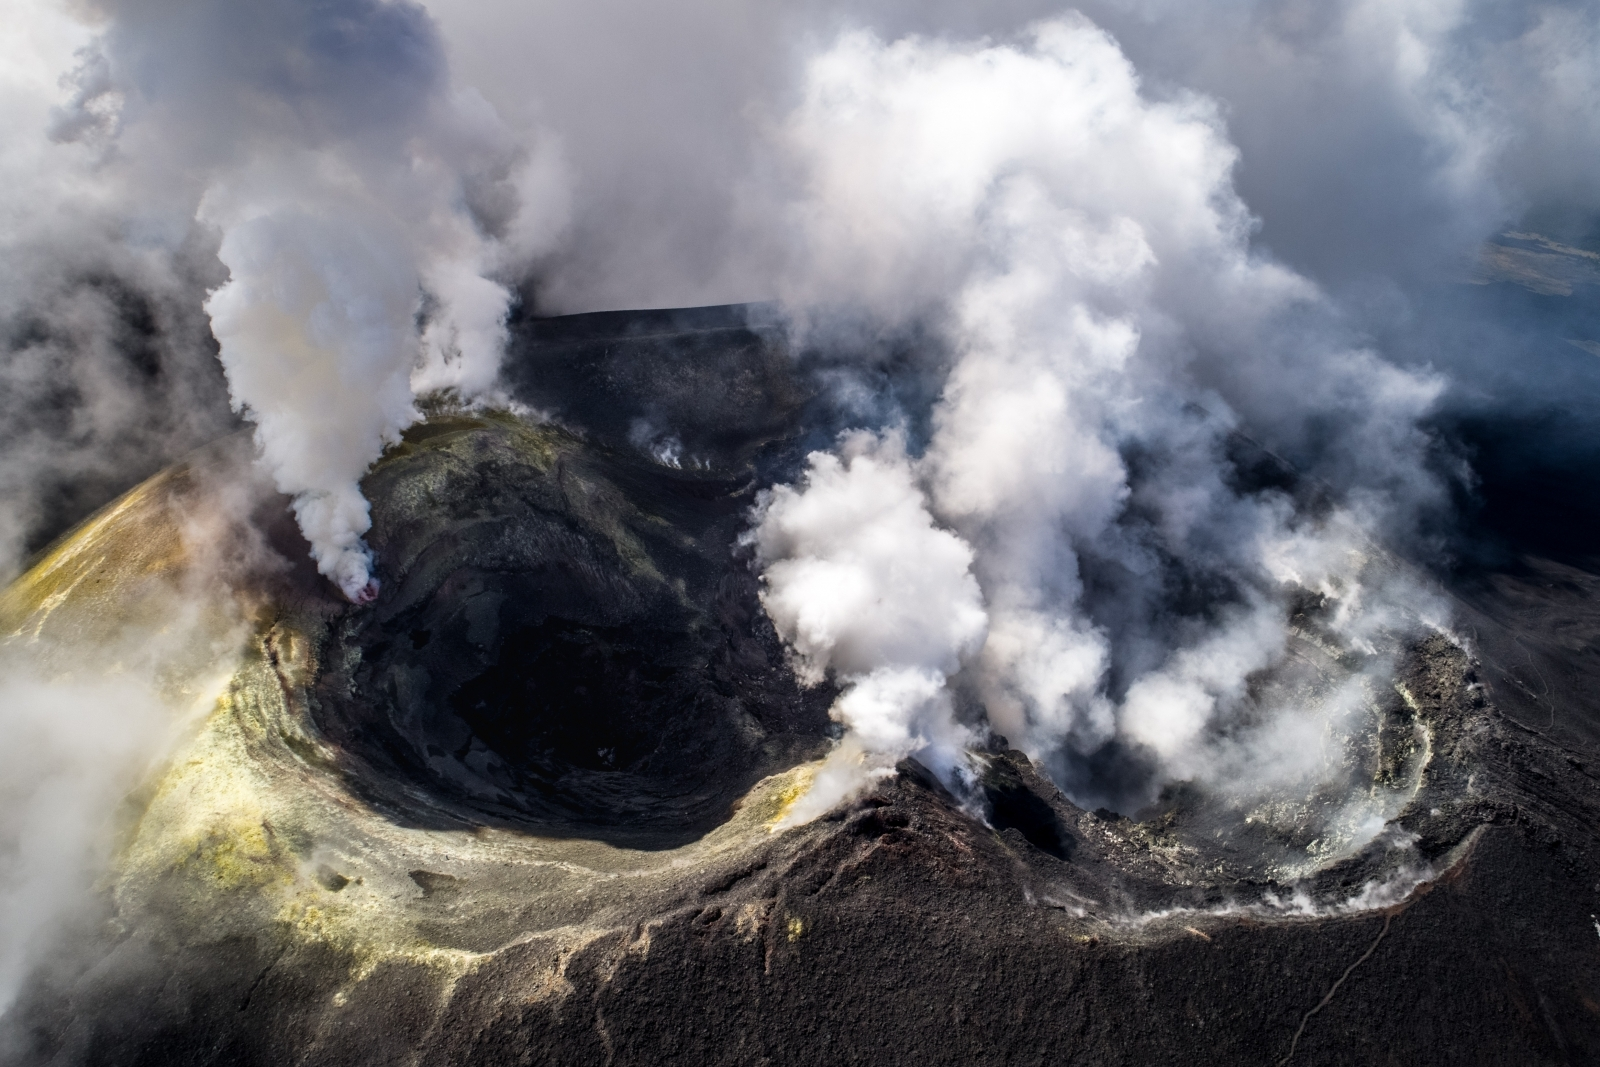 Image of Mount Etna taken by drone